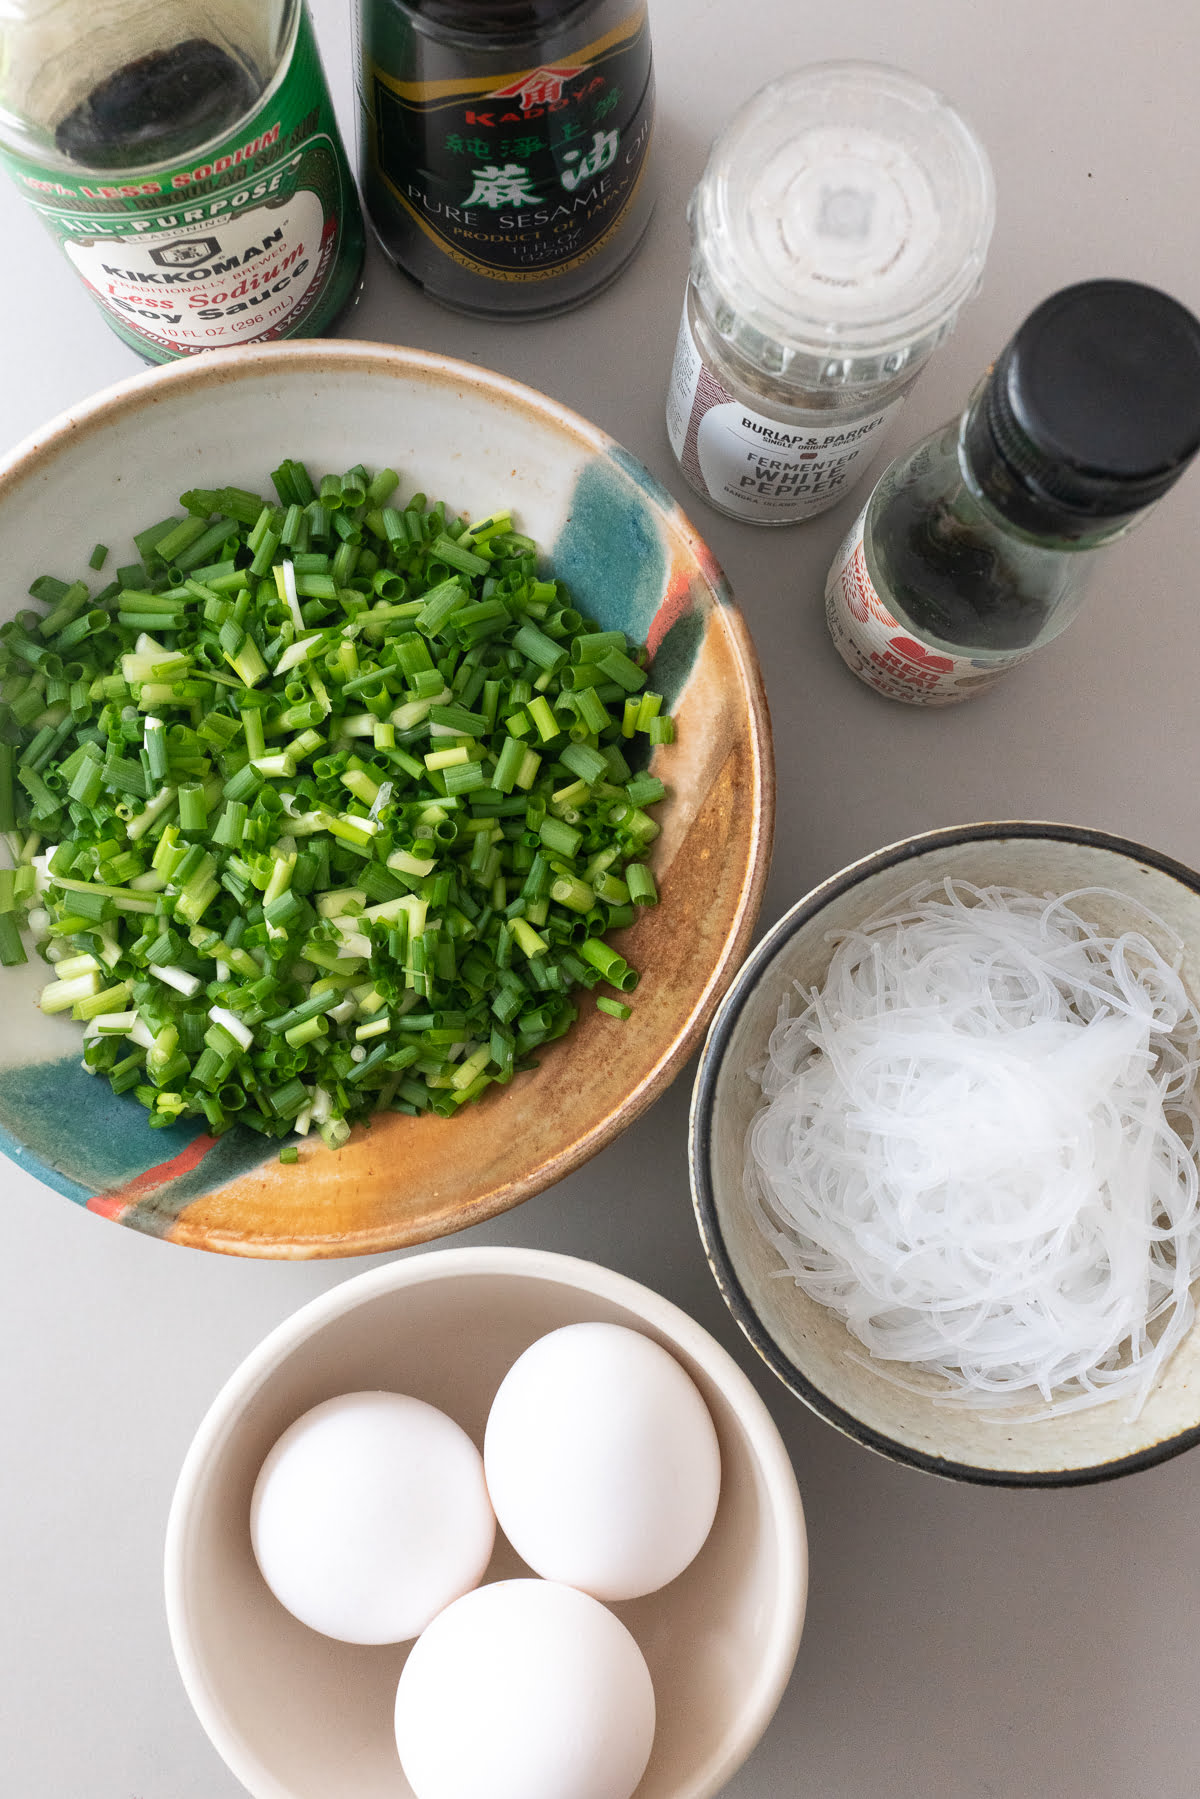 Ingredients for Chive Vermicelli Egg Pancakes laid out on a table. Featuring chives, eggs, vermicelli noodles, soy sauce, fish sauce, sesame oil, and white pepper.